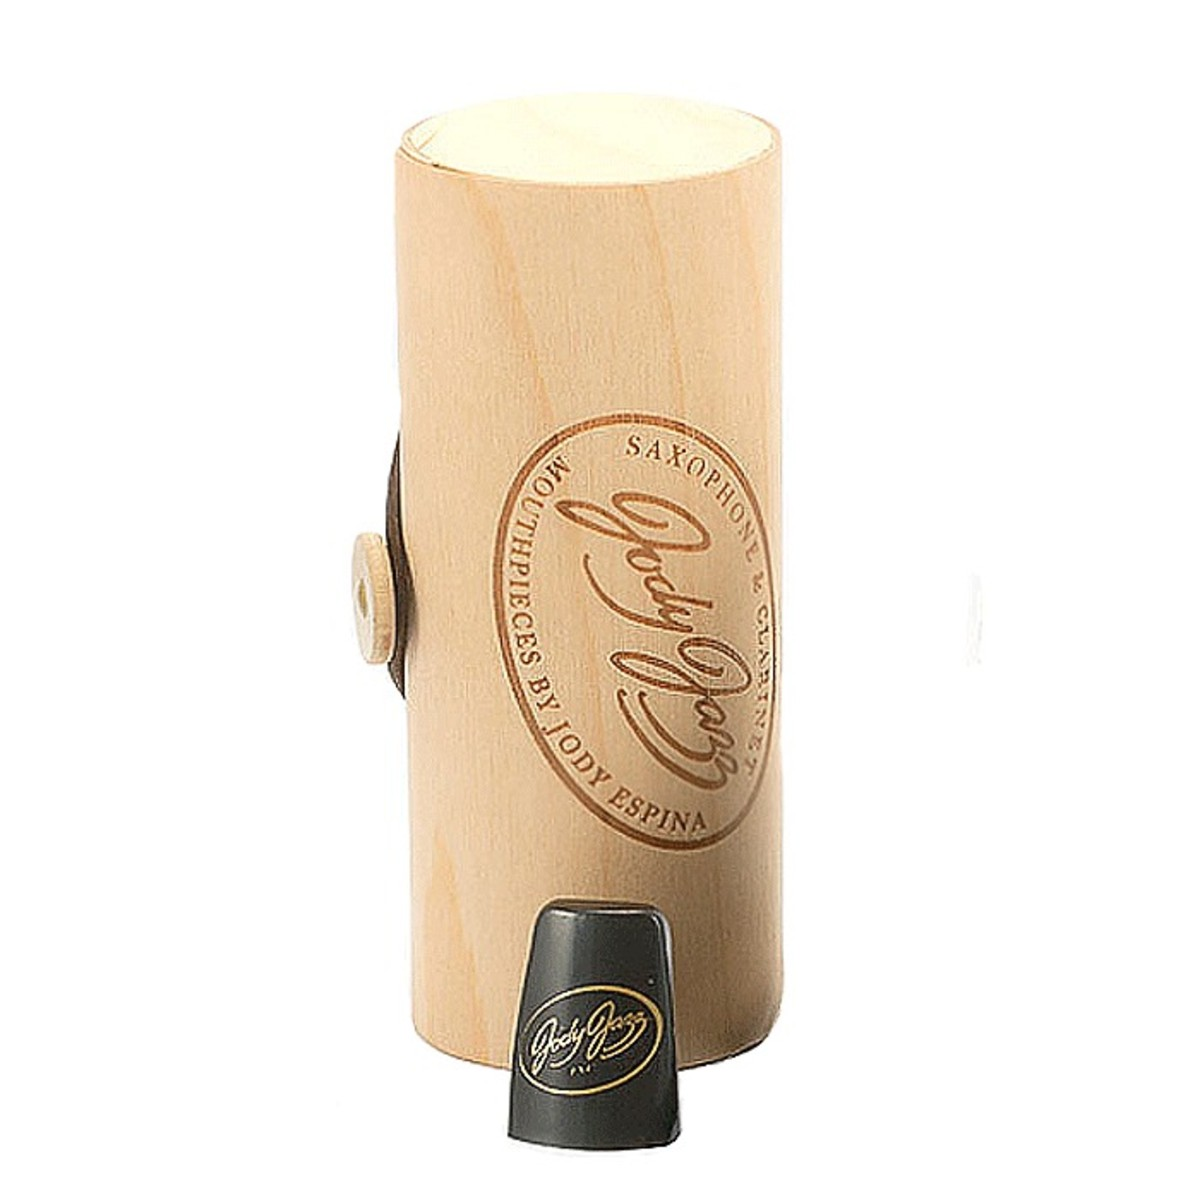 jodyjazz dv metal alto sax mouthpiece 8 at gear4music. Black Bedroom Furniture Sets. Home Design Ideas